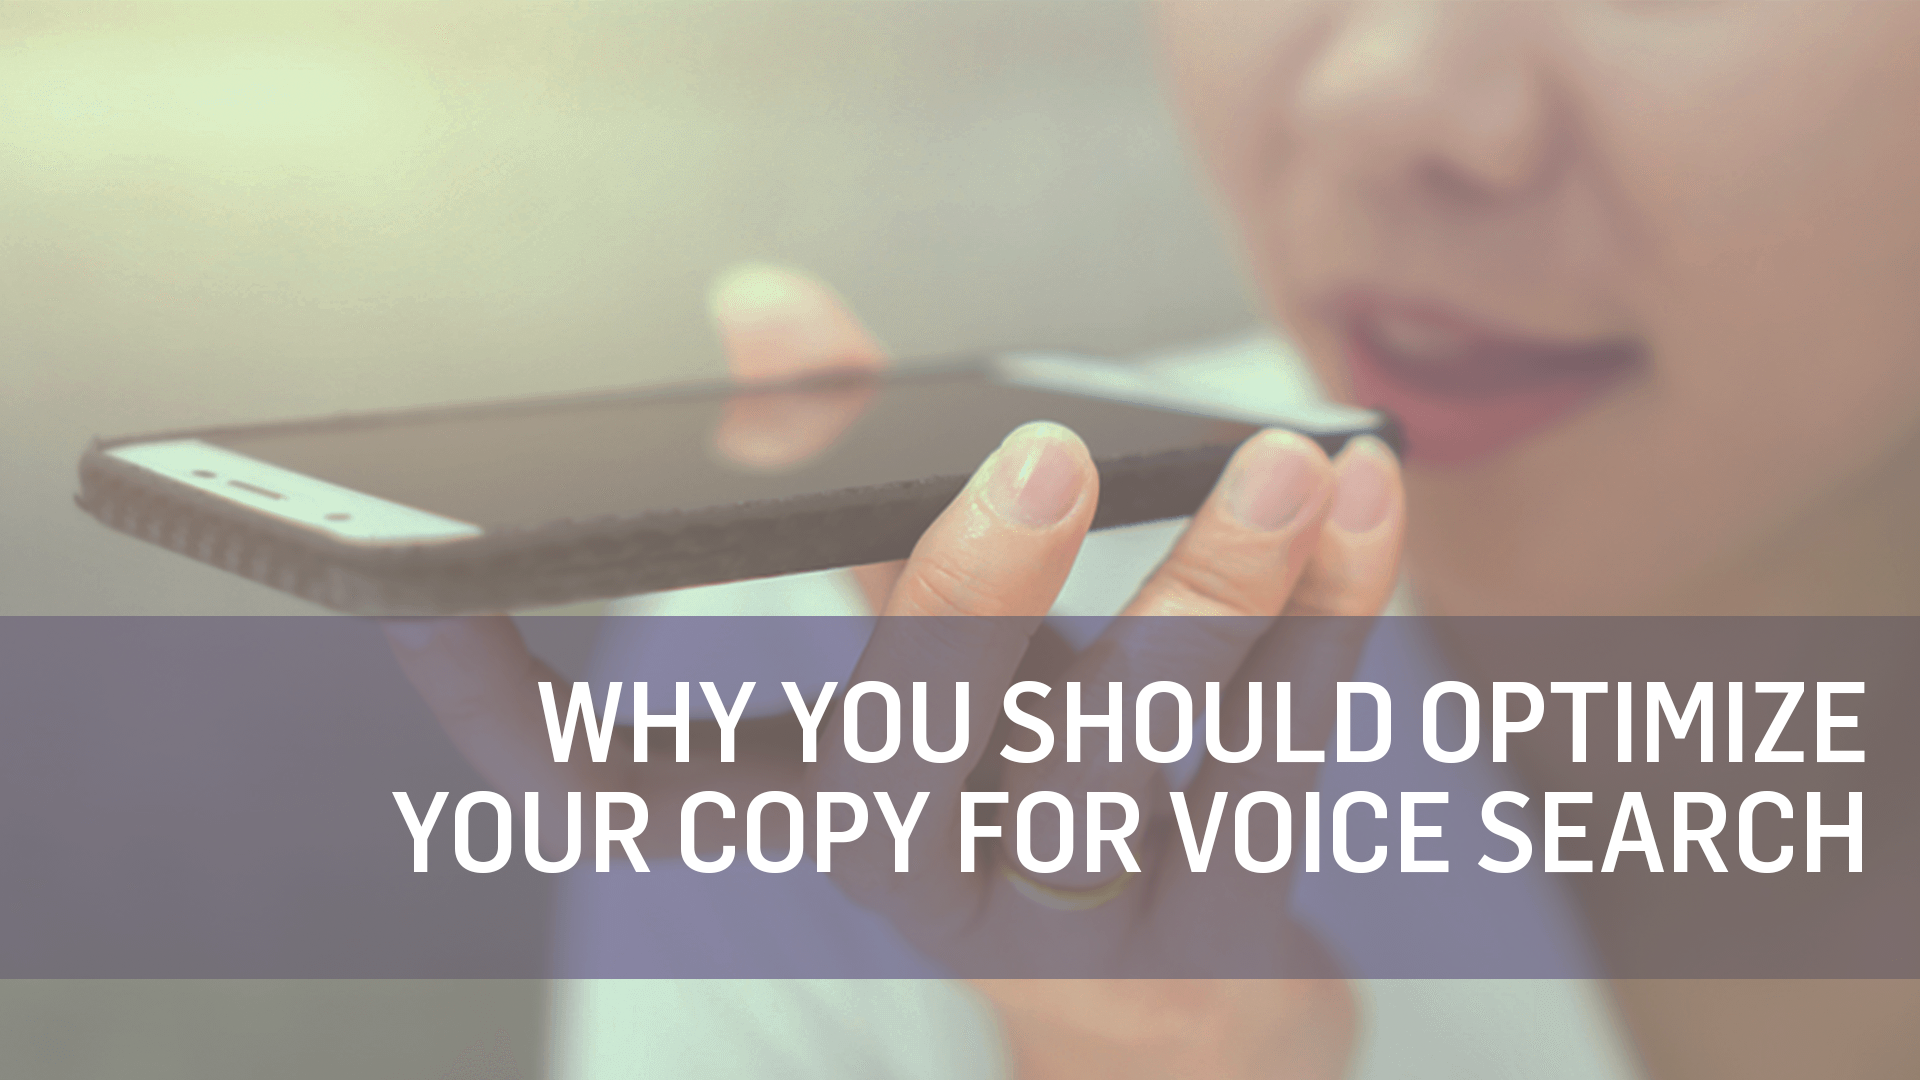 why you should optimize copy for voice search